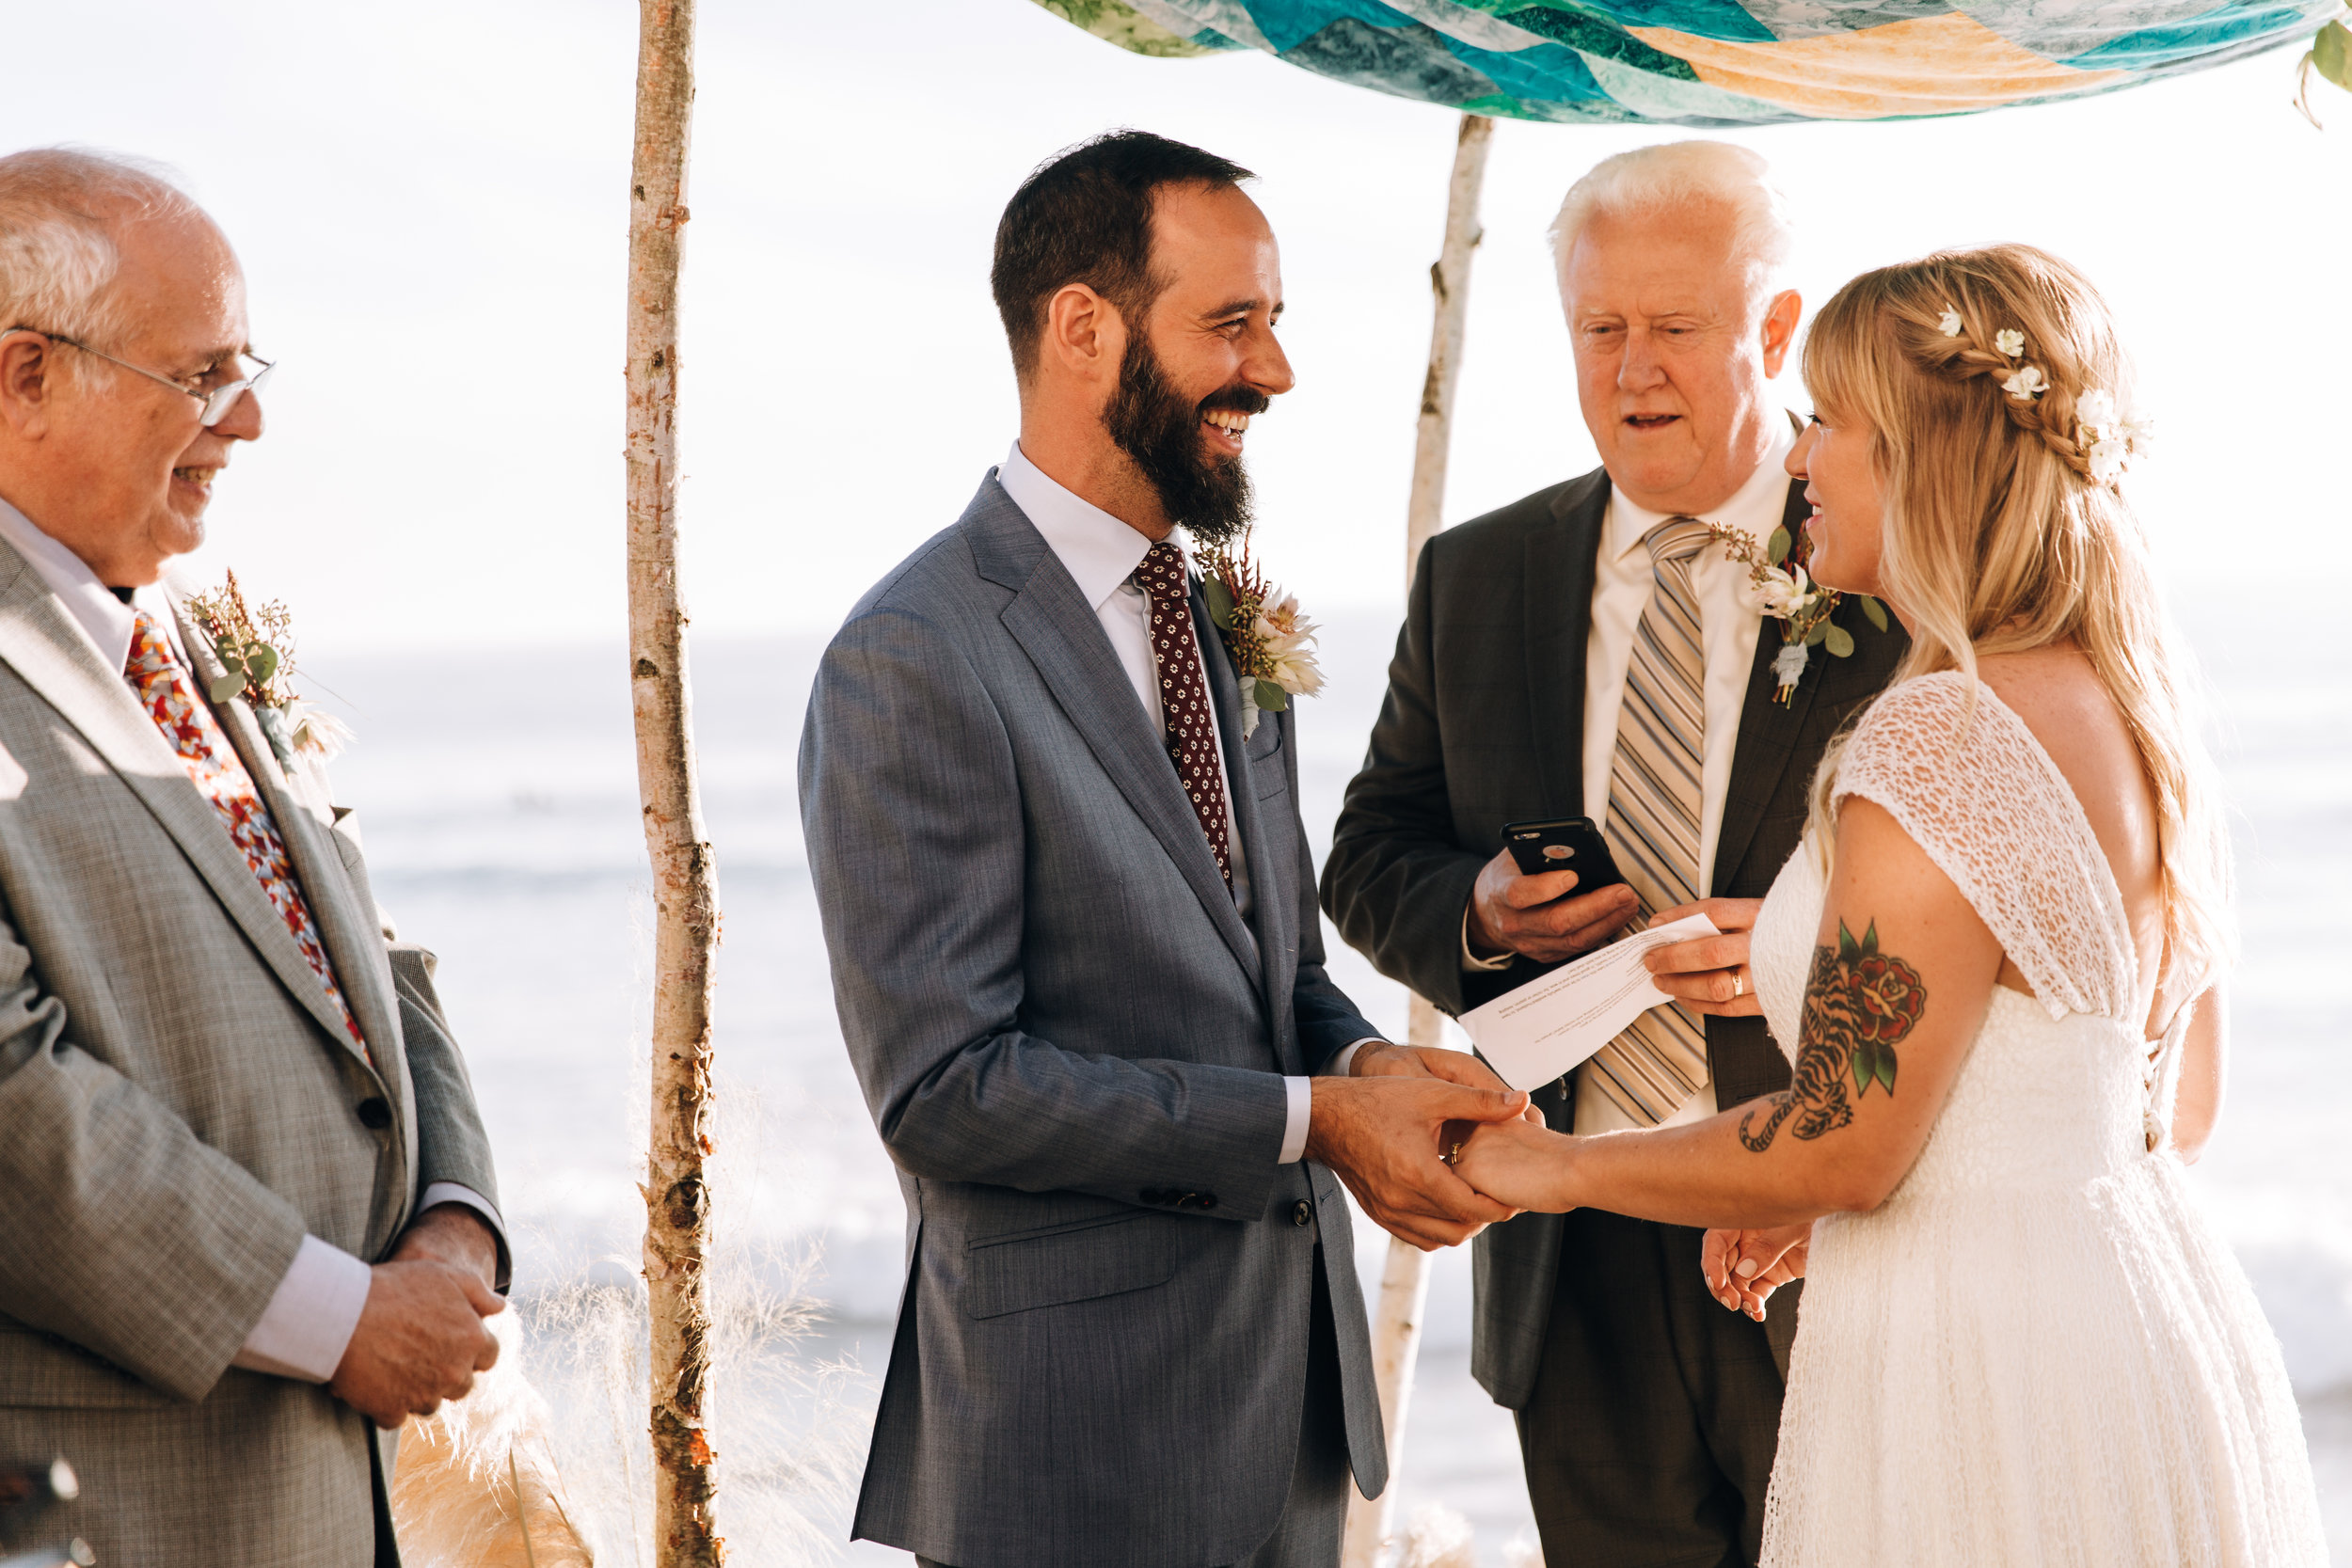 KaraNixonWeddings-Oceanside-Elopement-27.jpg